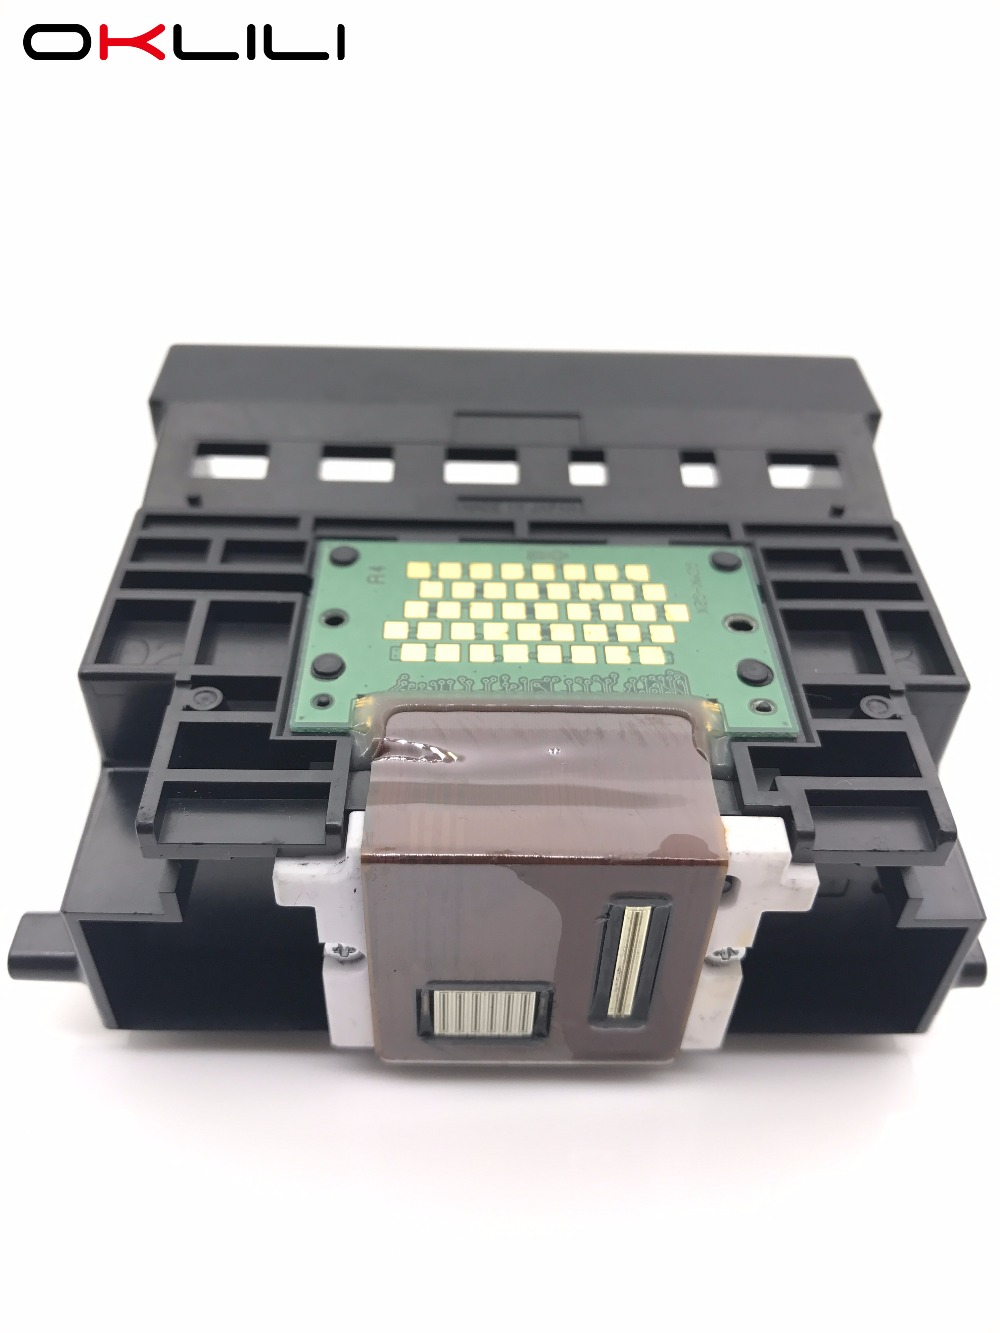 OKLILI QY6-0049 Printhead Print Head Printer Head for Canon 860i 865 i860 i865 MP770 MP790 iP4000 iP4100 MP750 MP760 MP780 new qy6 0049 printhead for pixus 860i 865r i860 i865 ip4000 ip4100 ip4100r mp770 mp790 mp750 mp760 mp780 printer